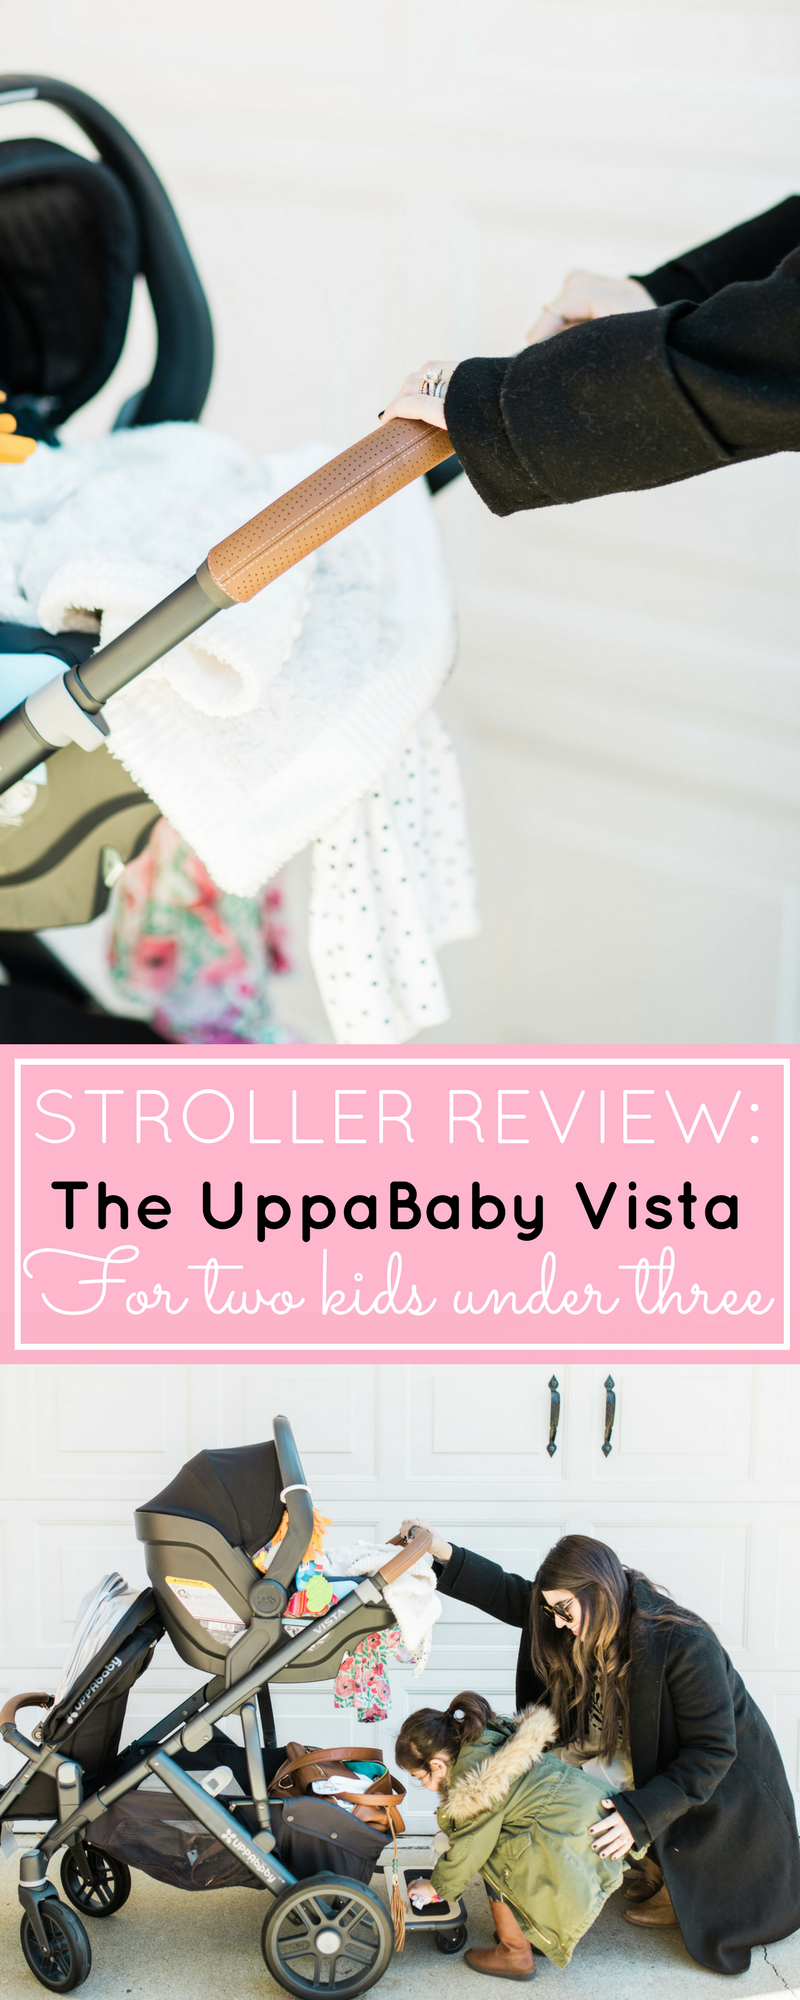 It's finally here! Our review of the UPPAbaby VISTA (and how we use the stroller for two kids under three); plus details about using the RumbleSeat, MESA Car Seat, and PiggyBack Ride-Along Board. Click through for the details. | glitterinc.com | @glitterinc - The Dream Stroller That Grows With Your Family: UPPAbaby VISTA by popular North Carolina mom blogger Glitter, Inc.